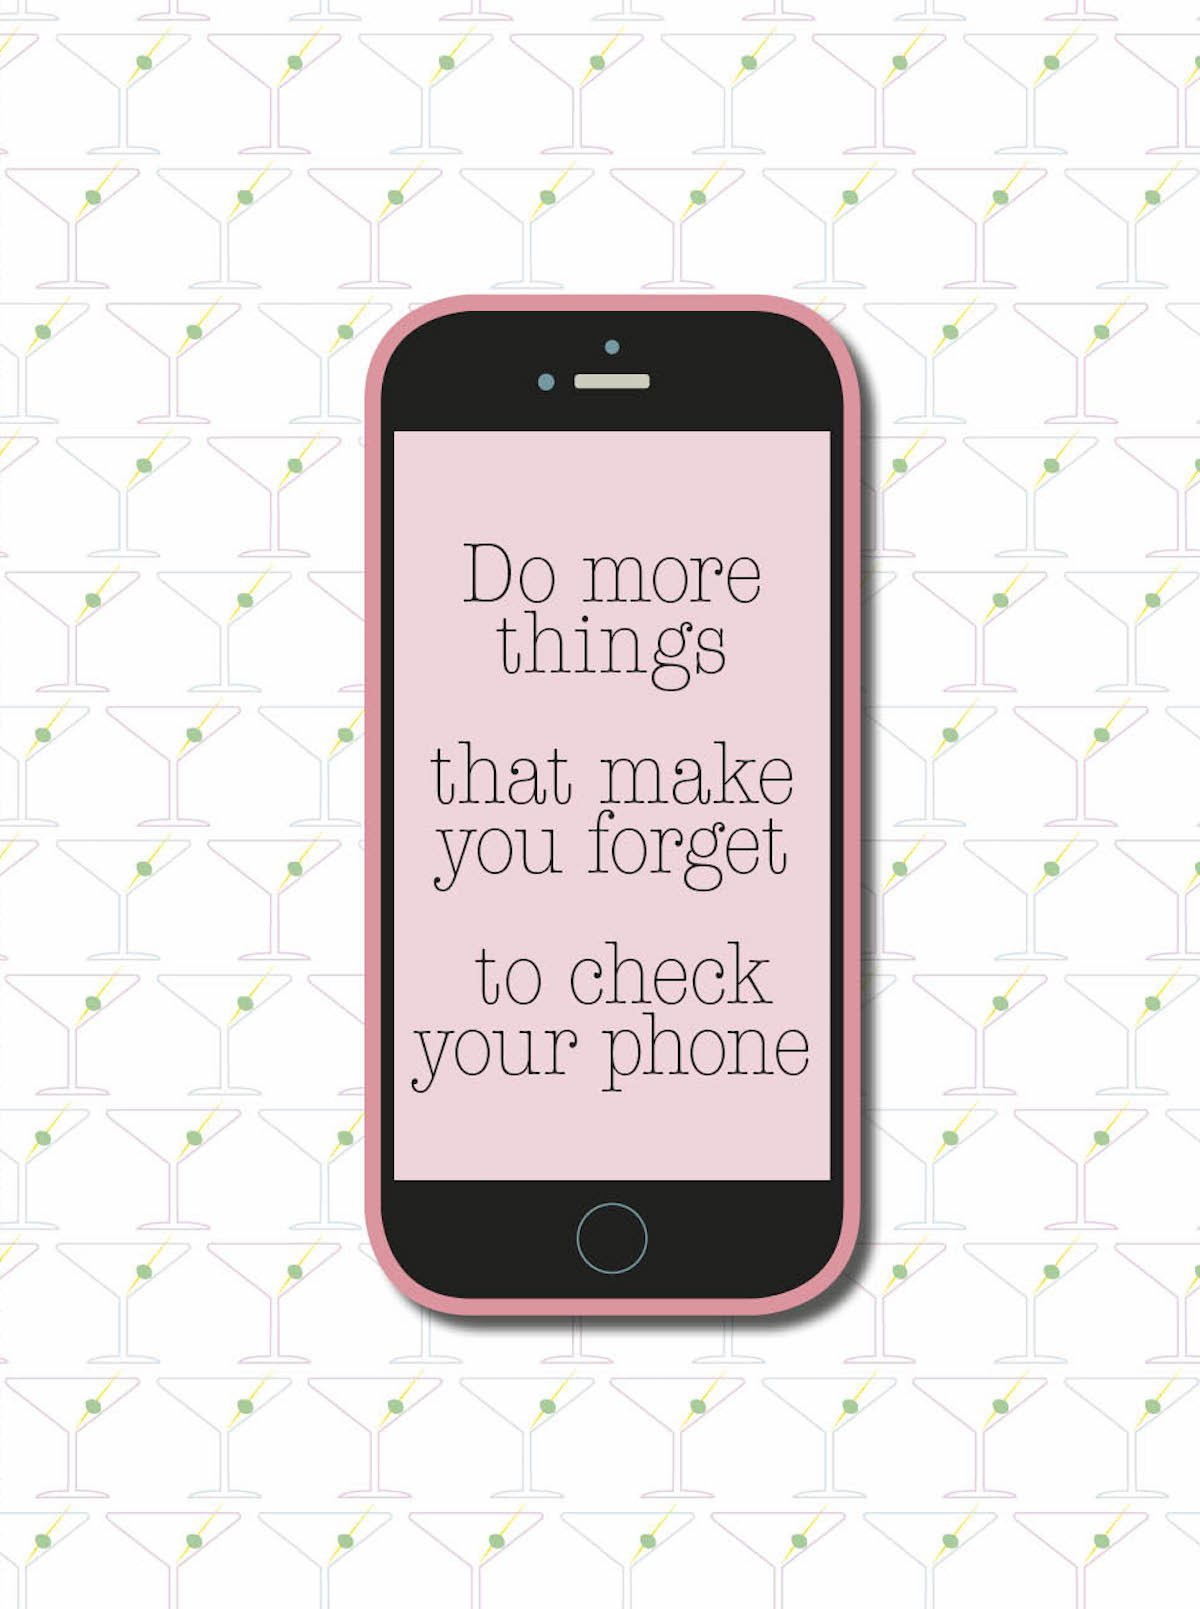 Spreuk van de week: Do more things that make you forget to check your phone